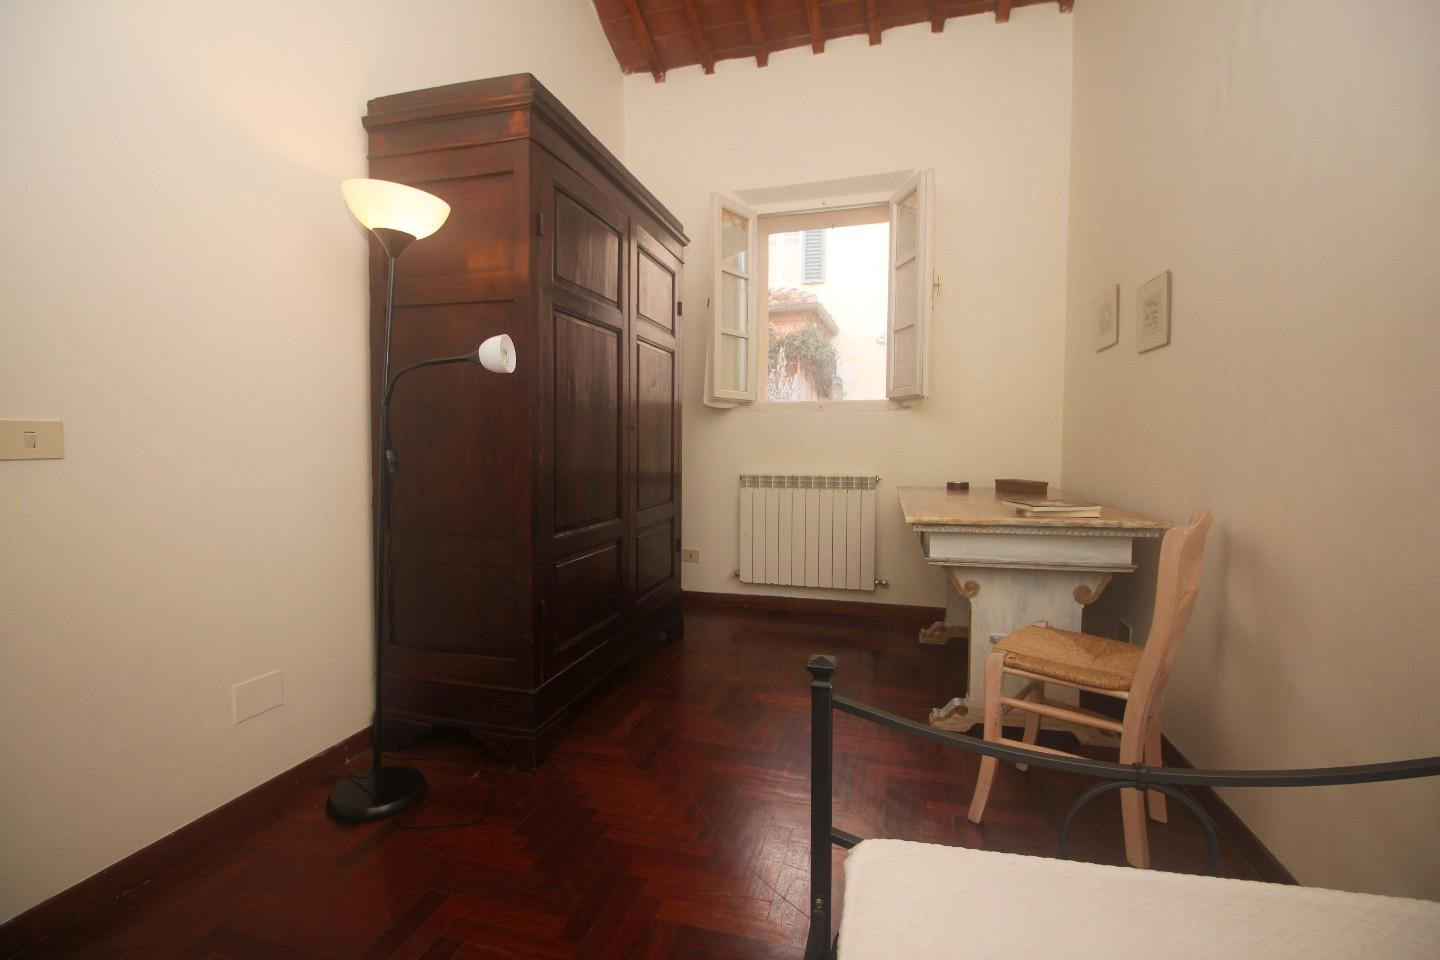 Apartment for sale, ref. R/538